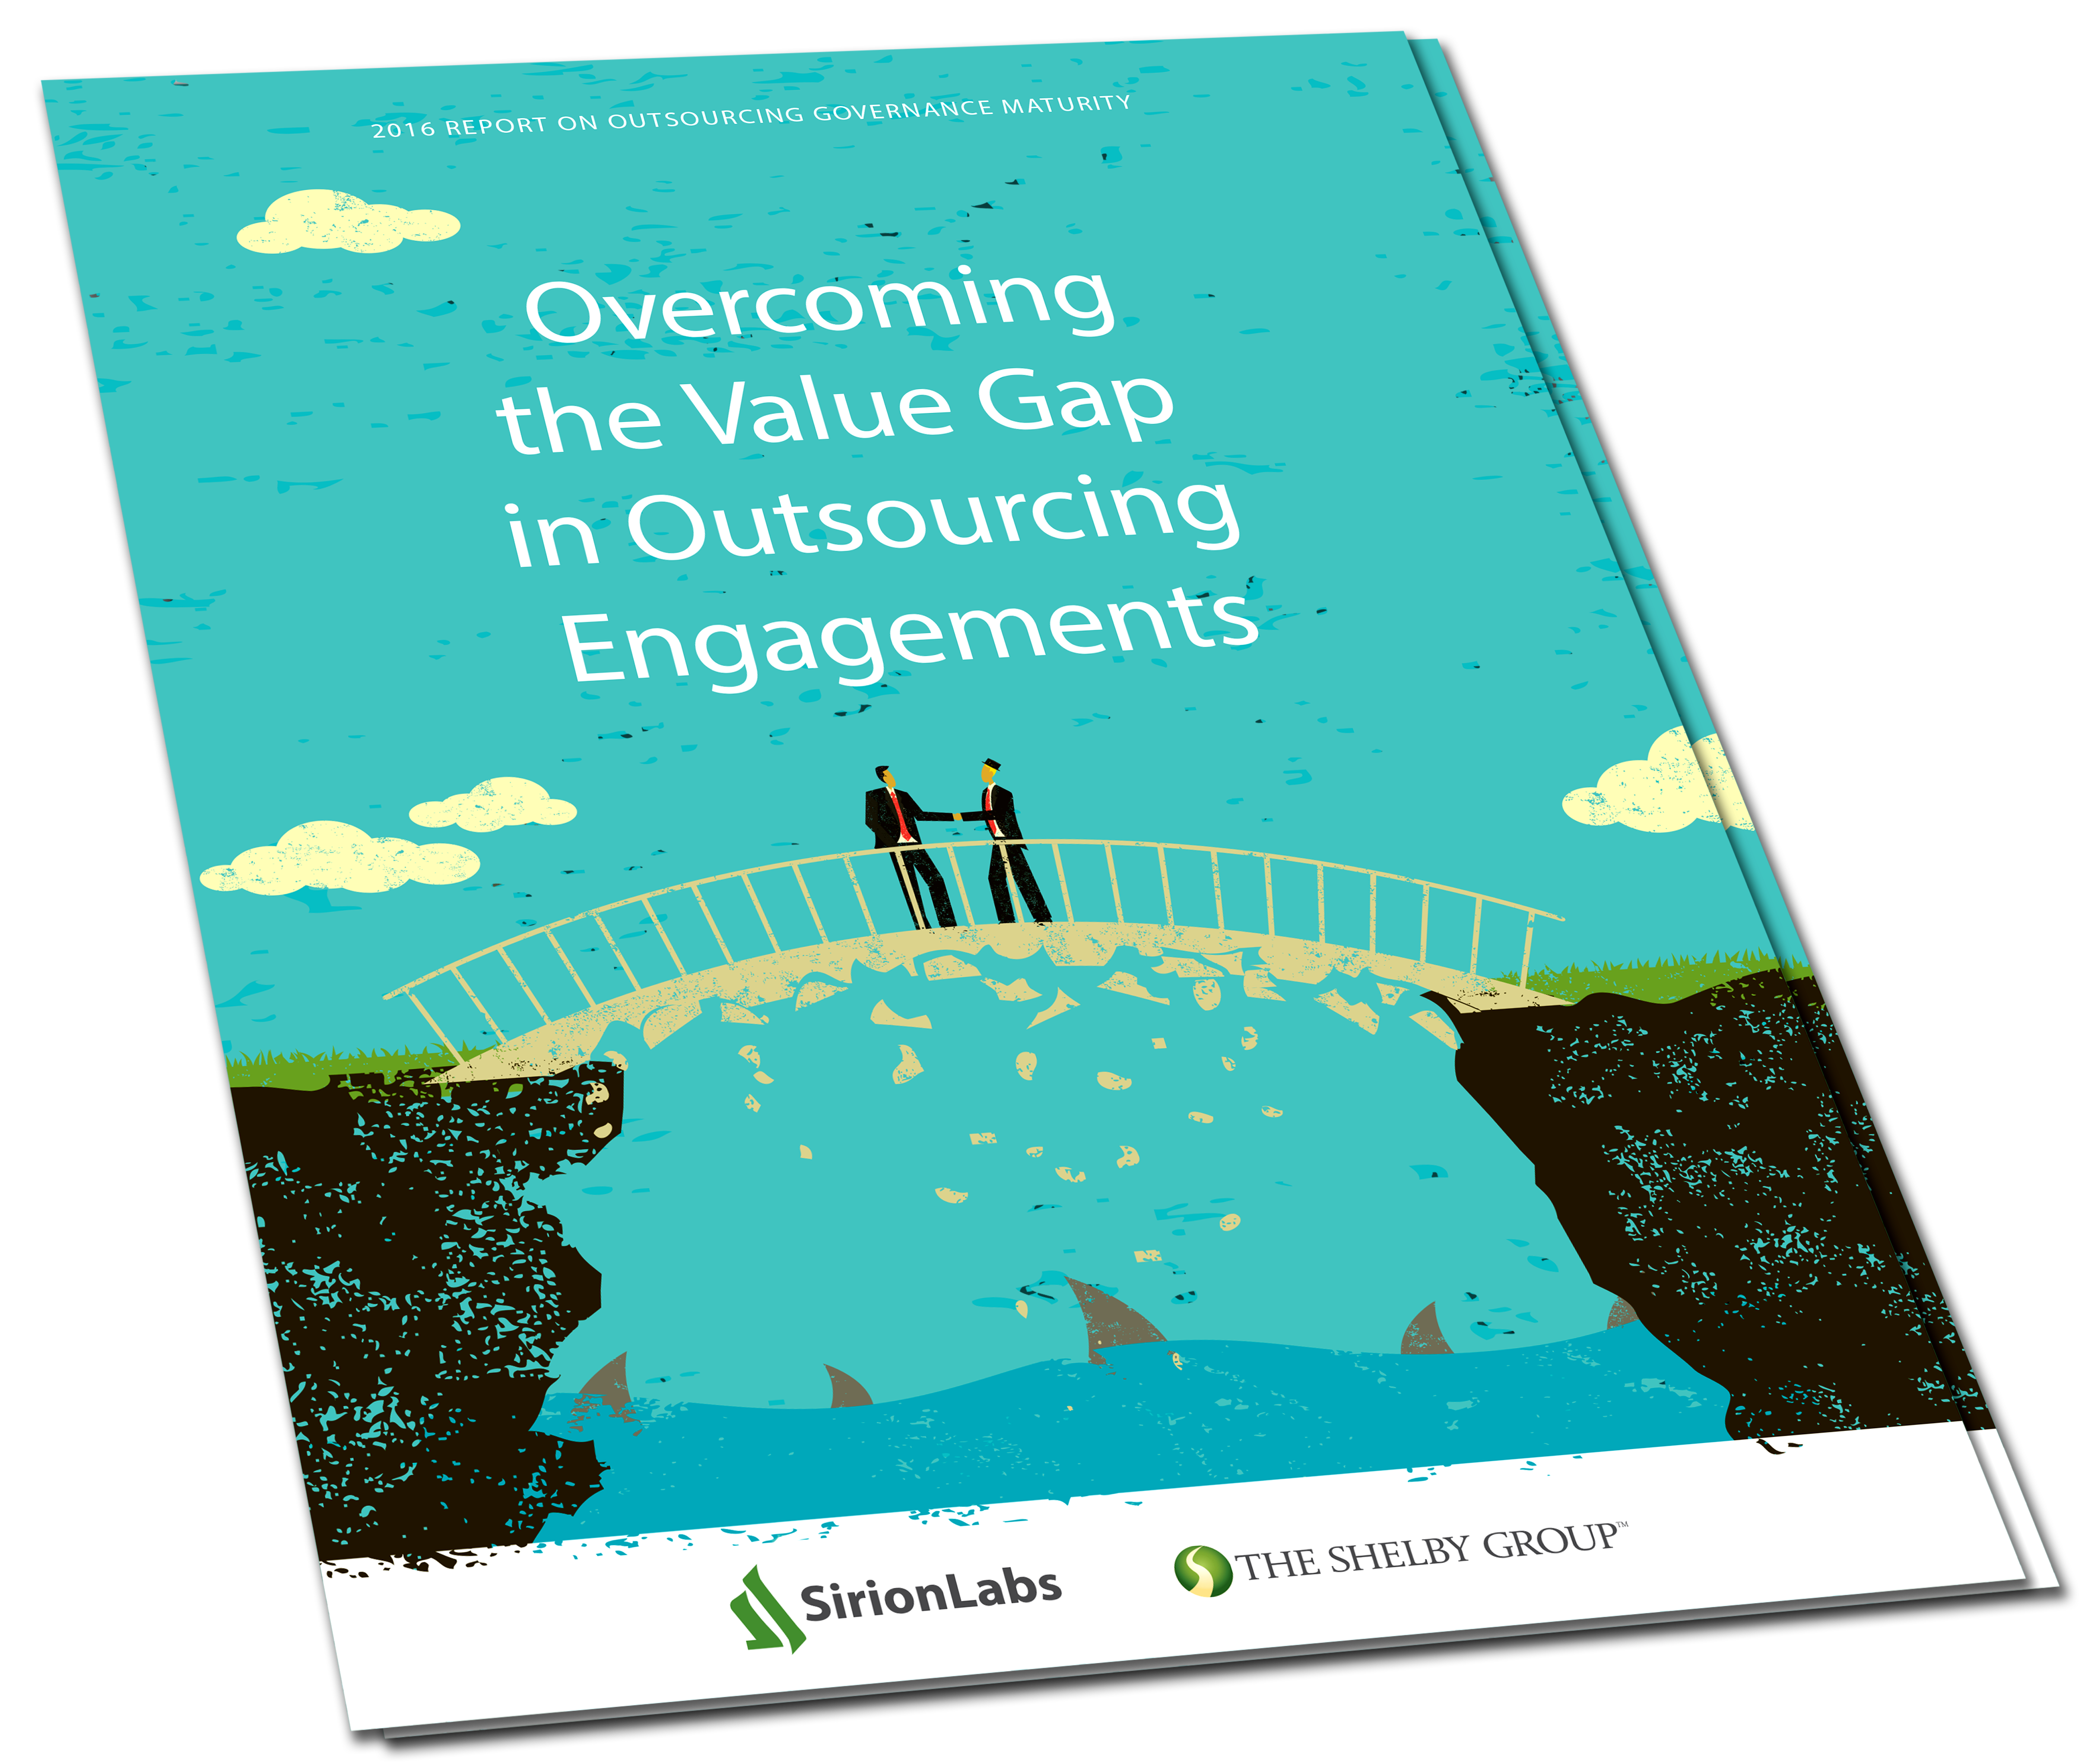 Overcoming the Value Gap in Outsourcing Engagements